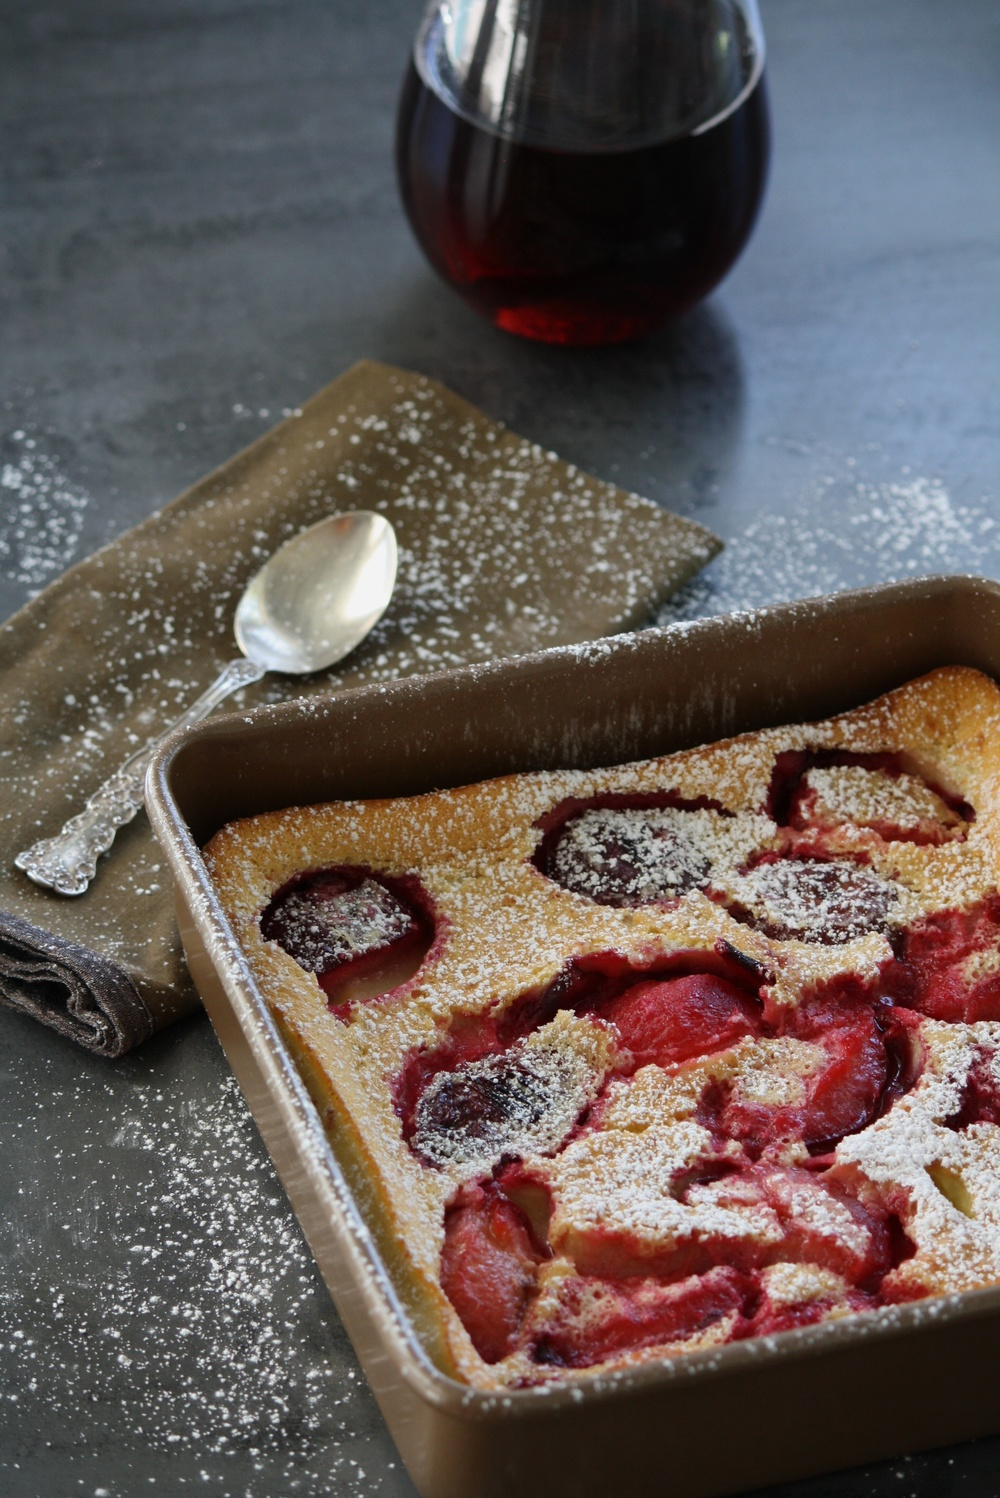 Food Photography - Plum Clafoutis